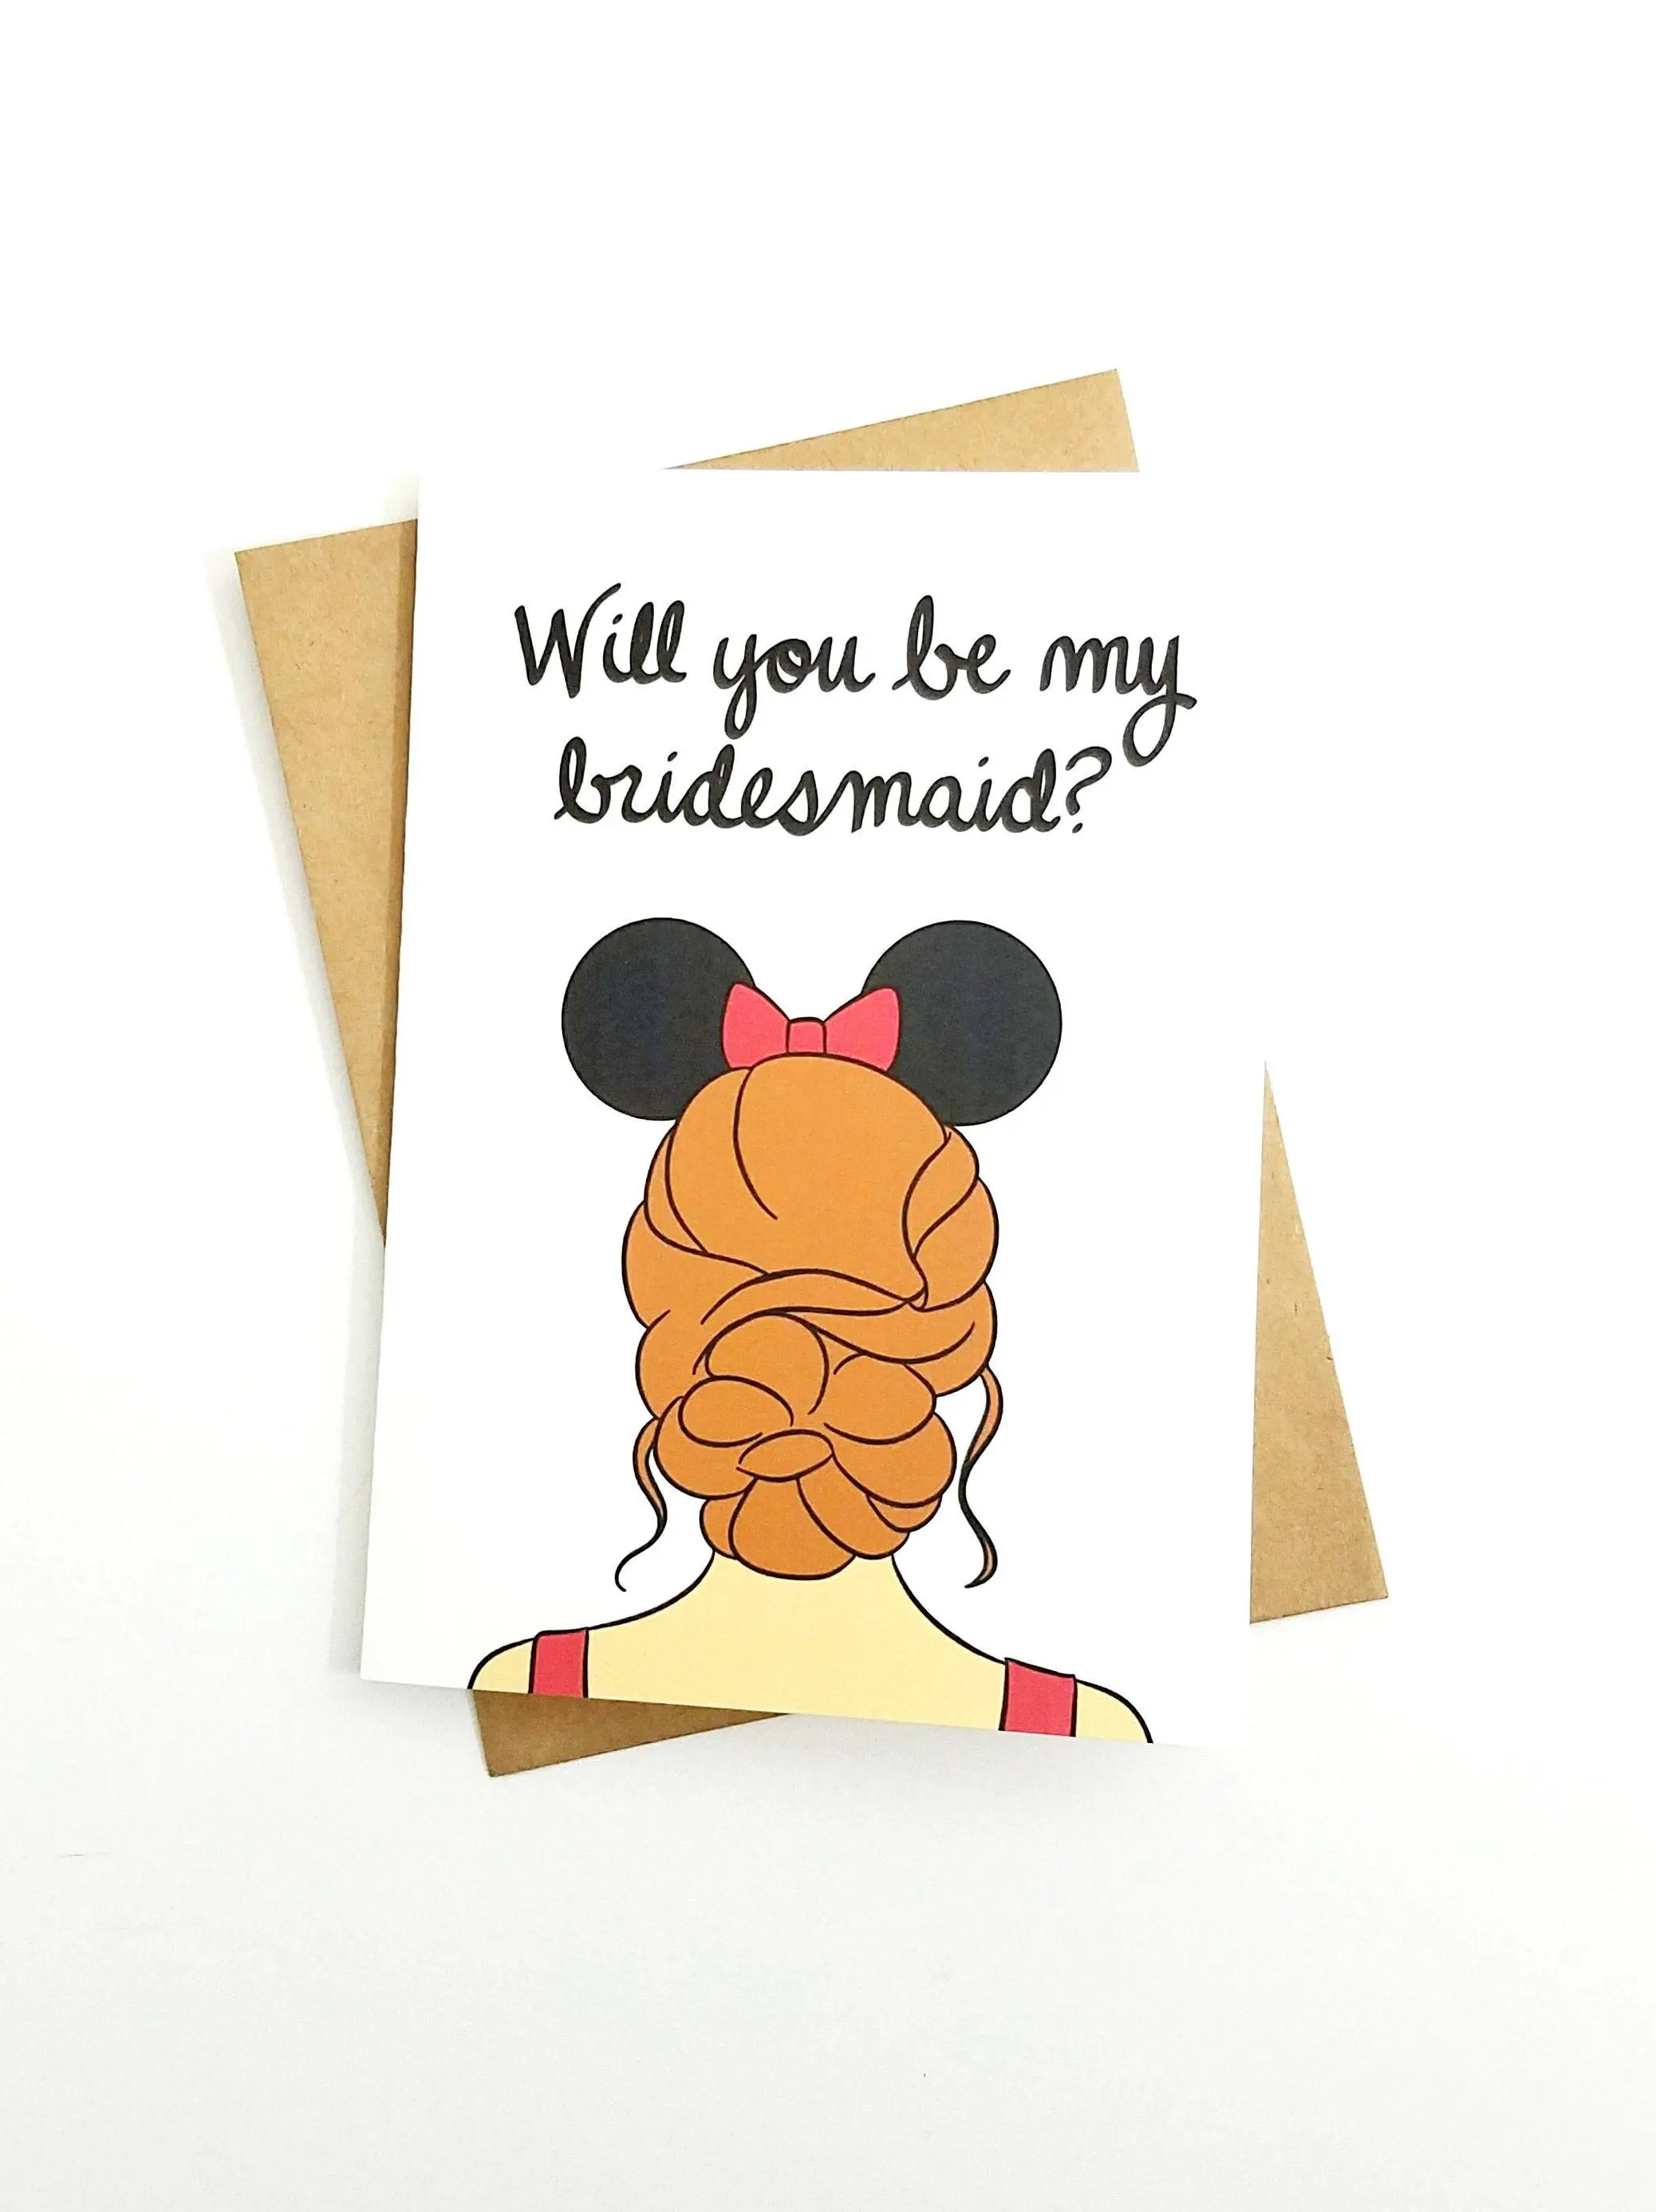 Disney Bridal Party Proposal Card Blank 5x7 Greeting Card - party proposal